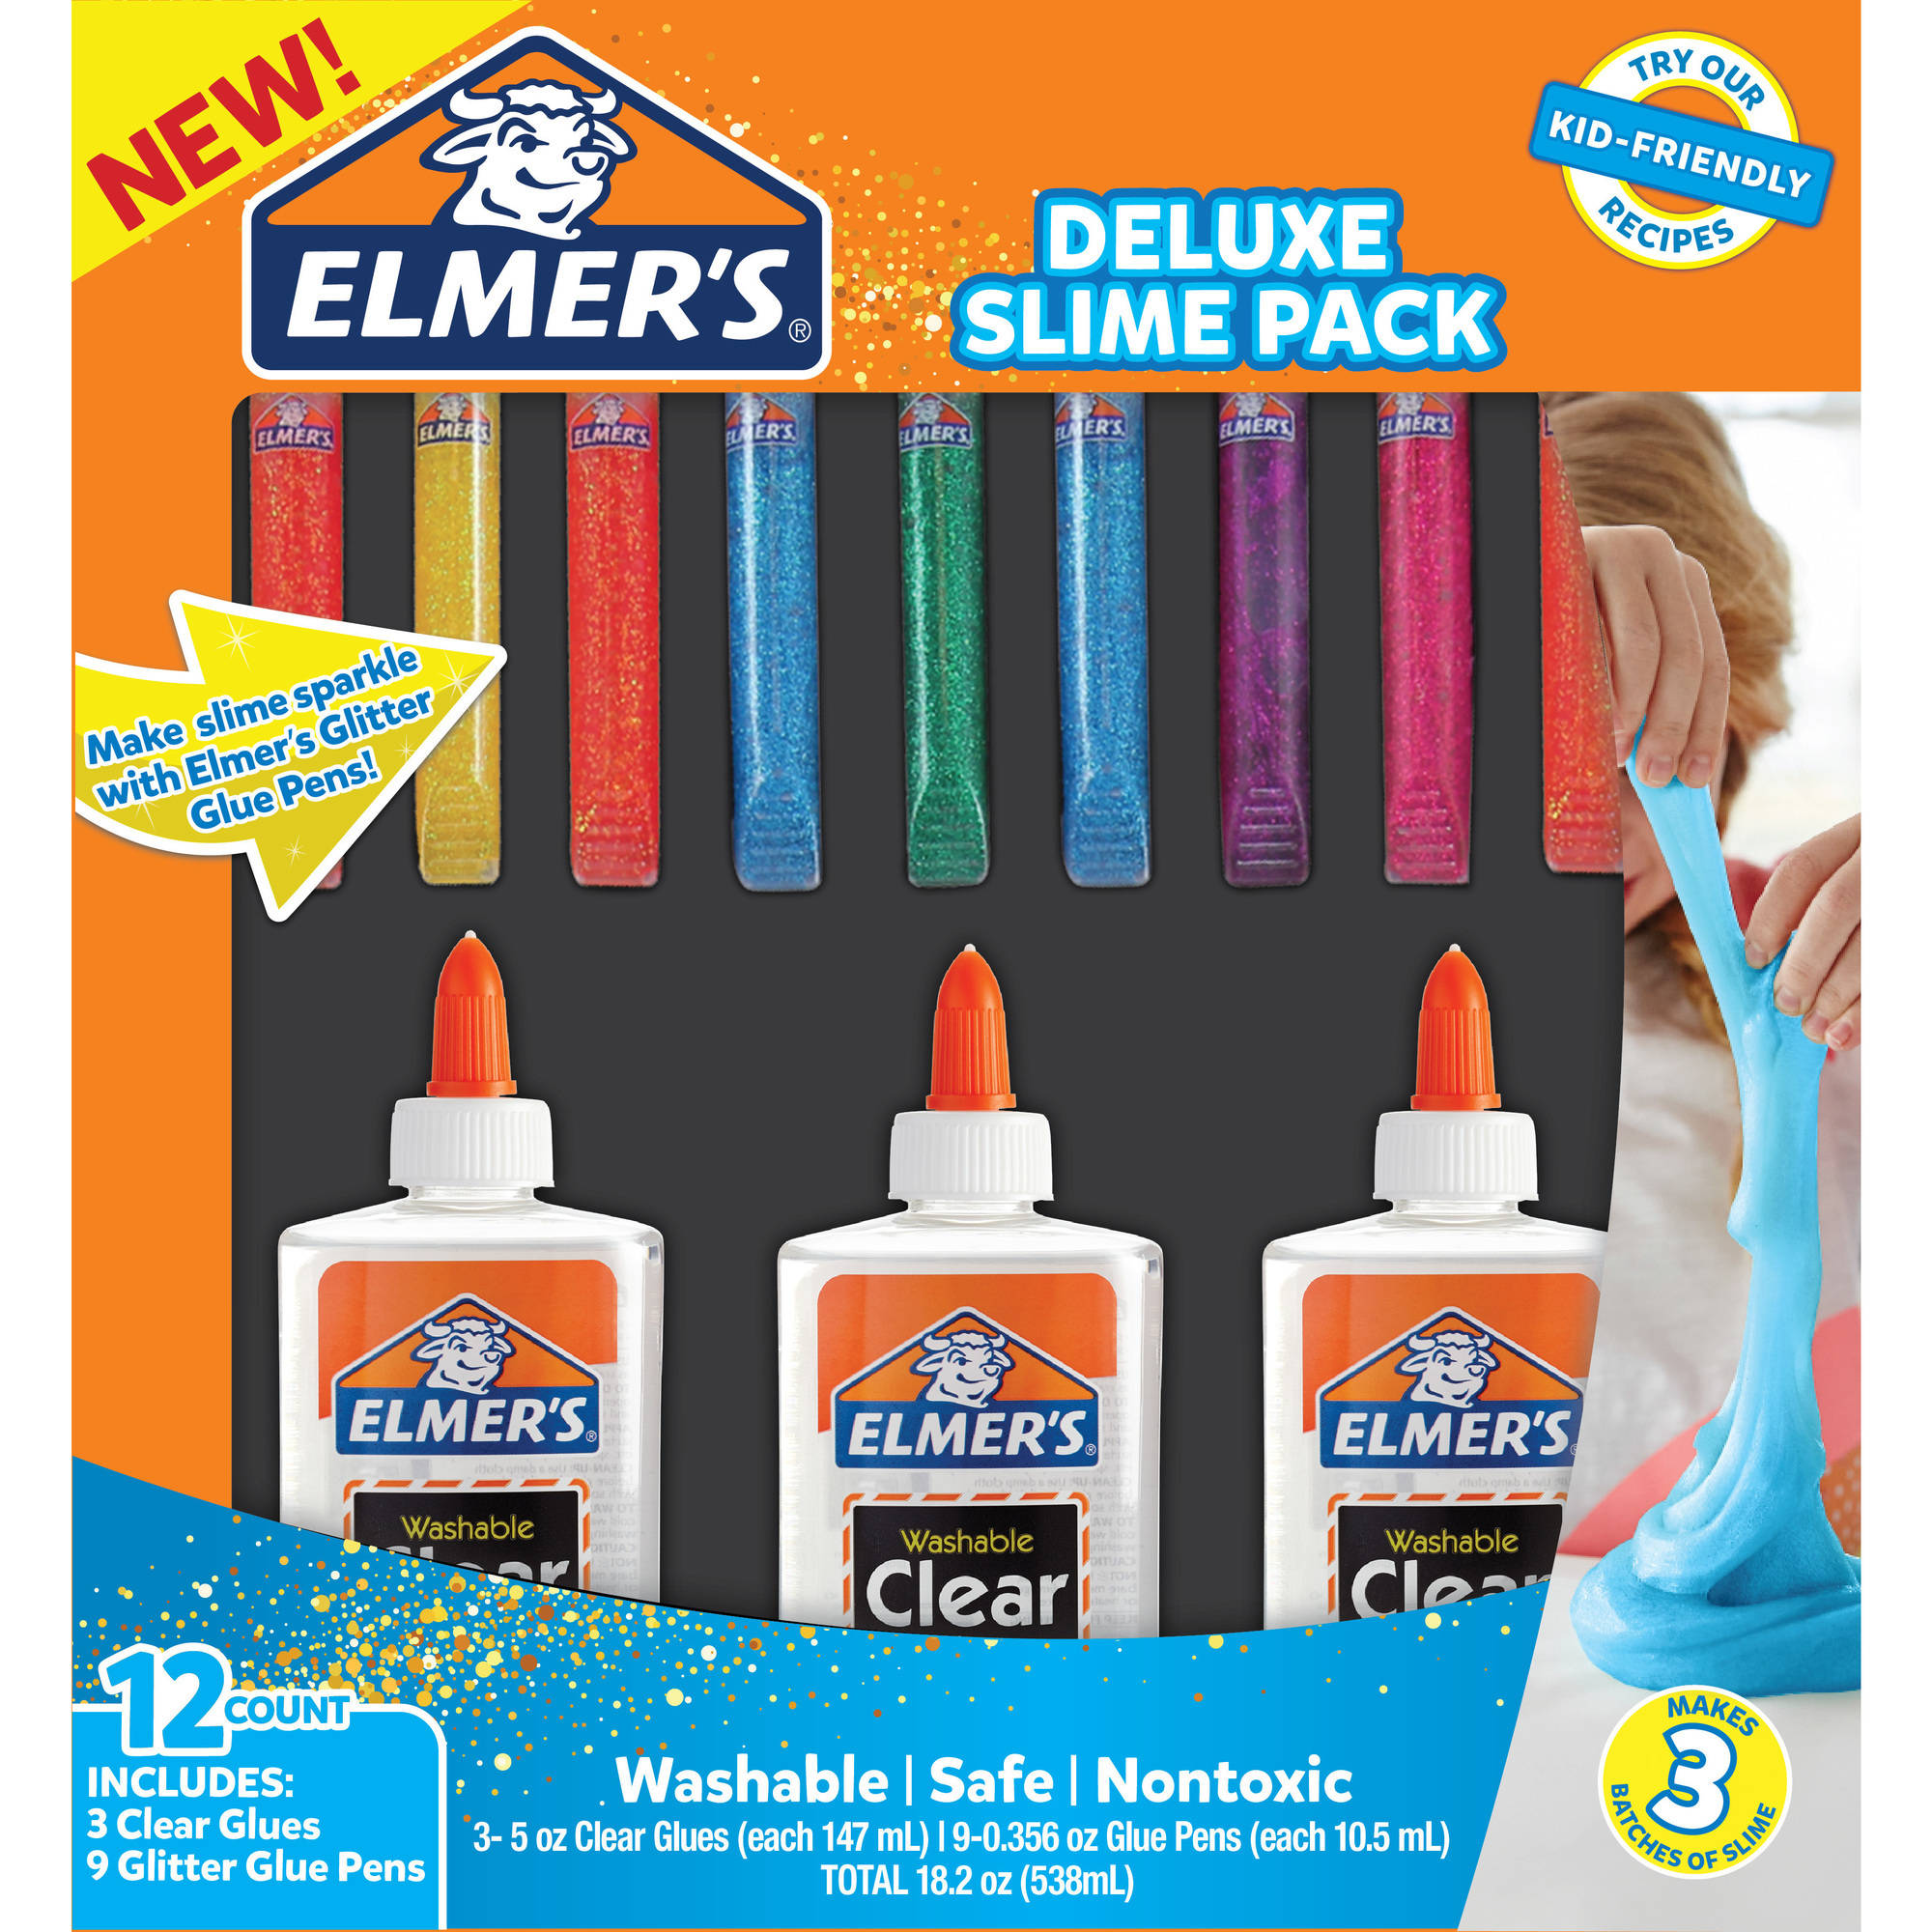 Elmer's Seasonal Slime Kits, Black Friday Slime Kit